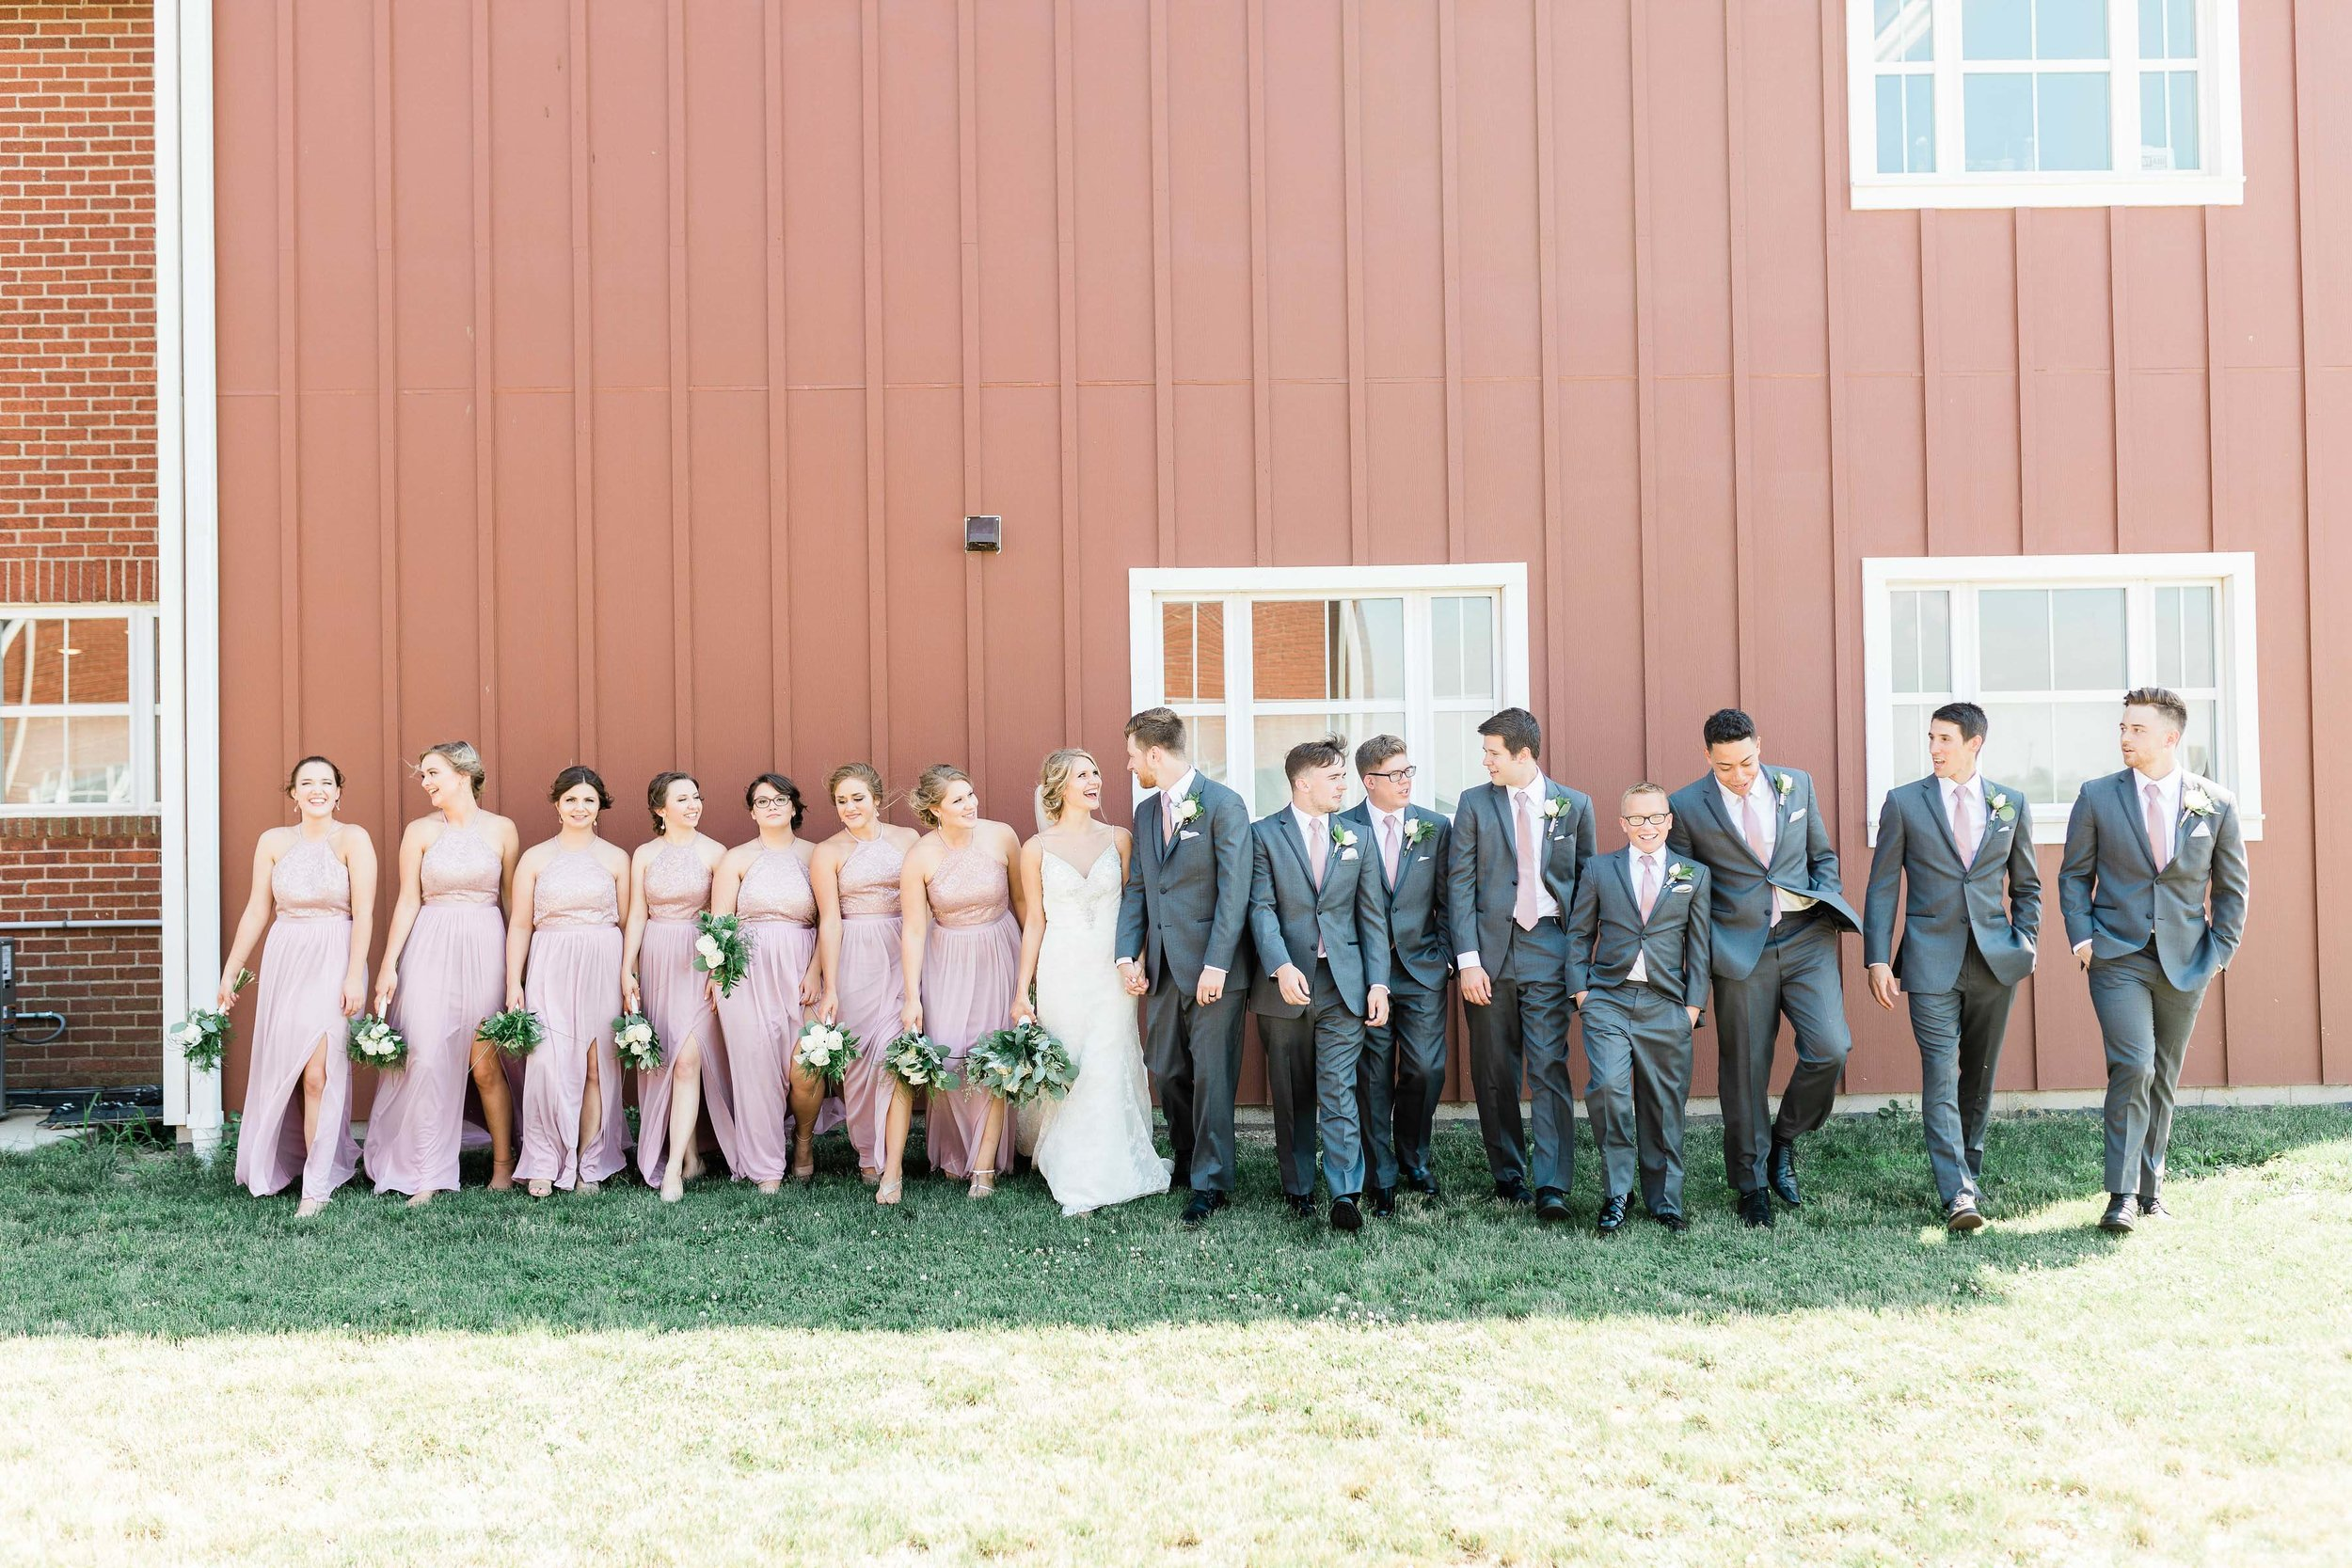 cincinnati wedding photographer bridal party pictures-5.jpg